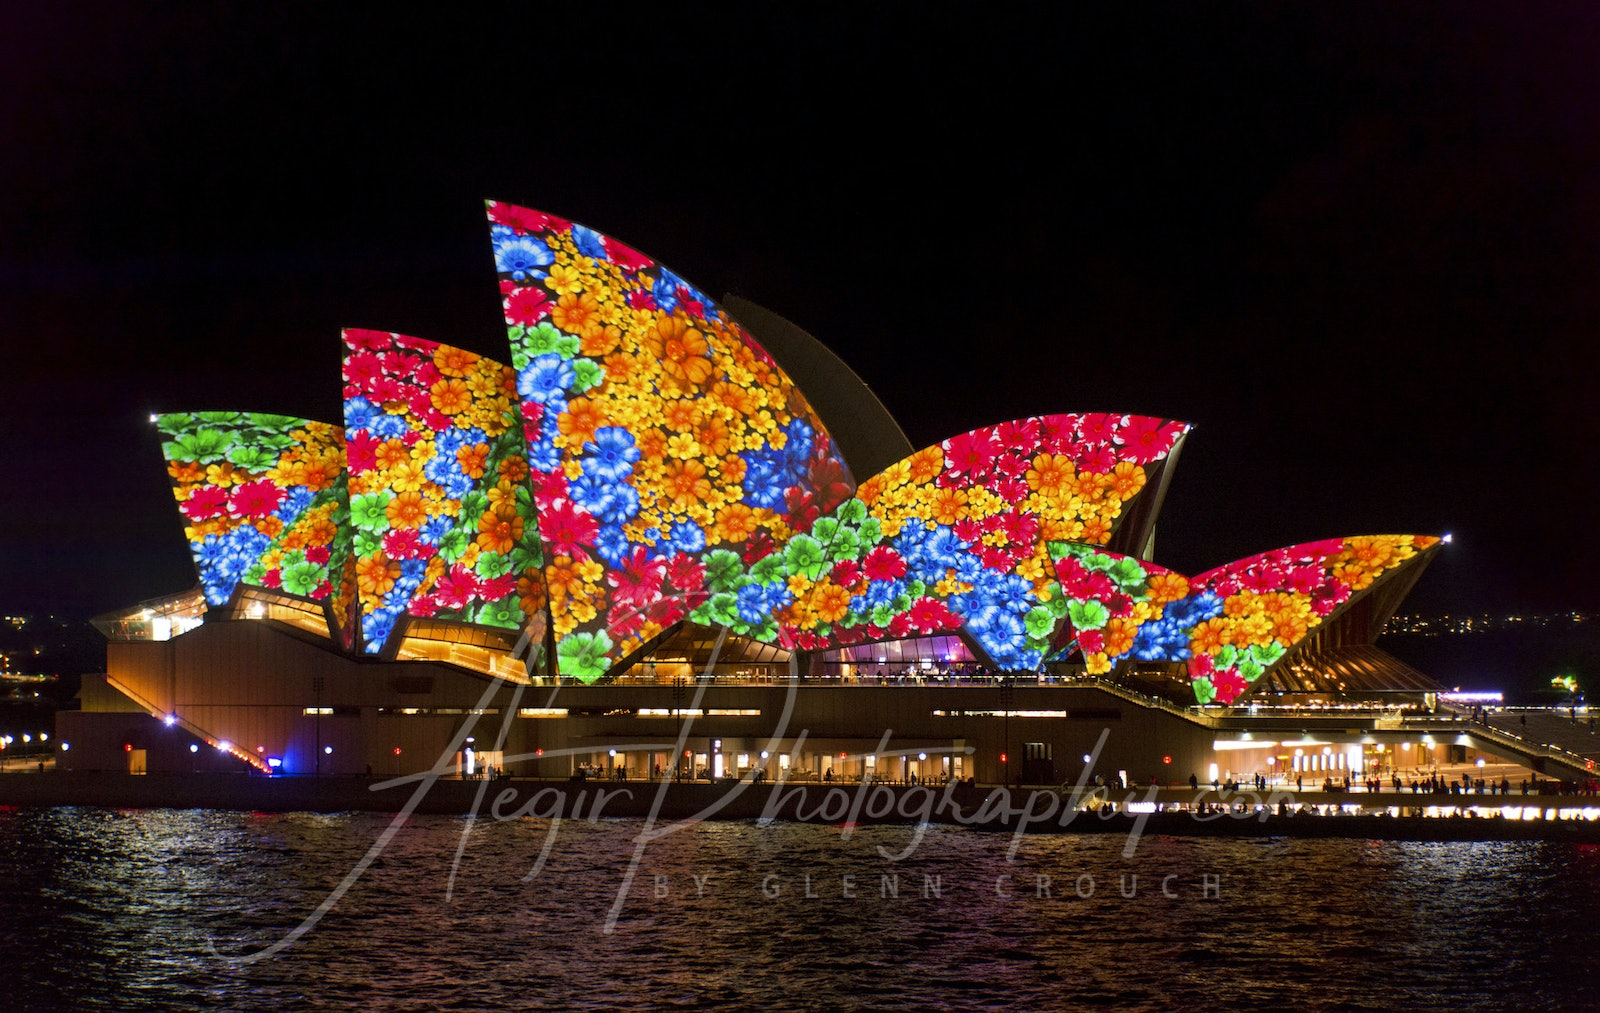 VIVID 2016 - Opera House - Lighting the Sails display during VIVID 2016, Sydney